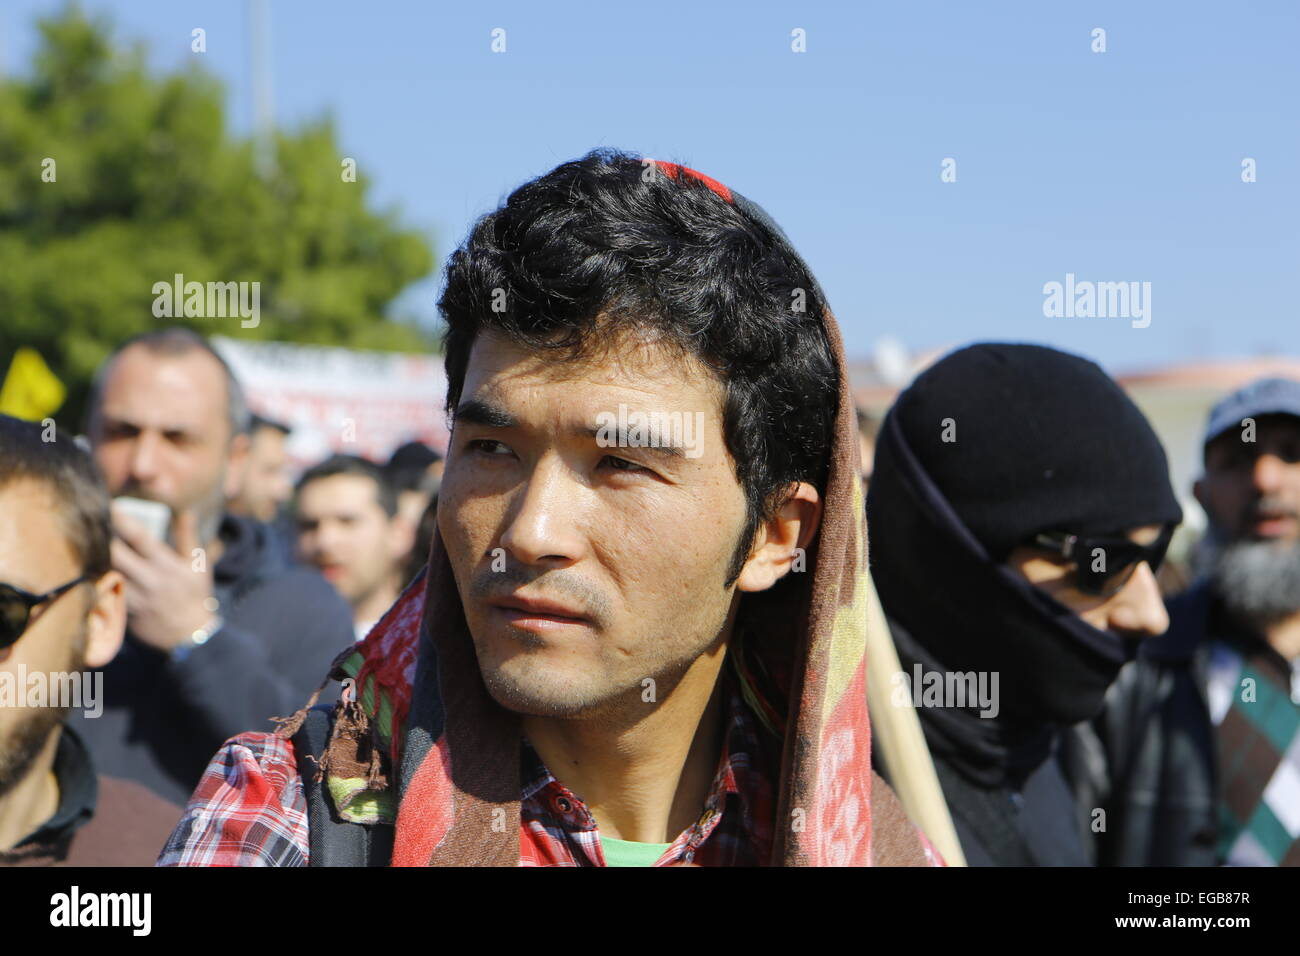 Close-up of one of the protesters. Minor scuffles between riot police and protesters broke out at the Amygdaleza - Stock Image